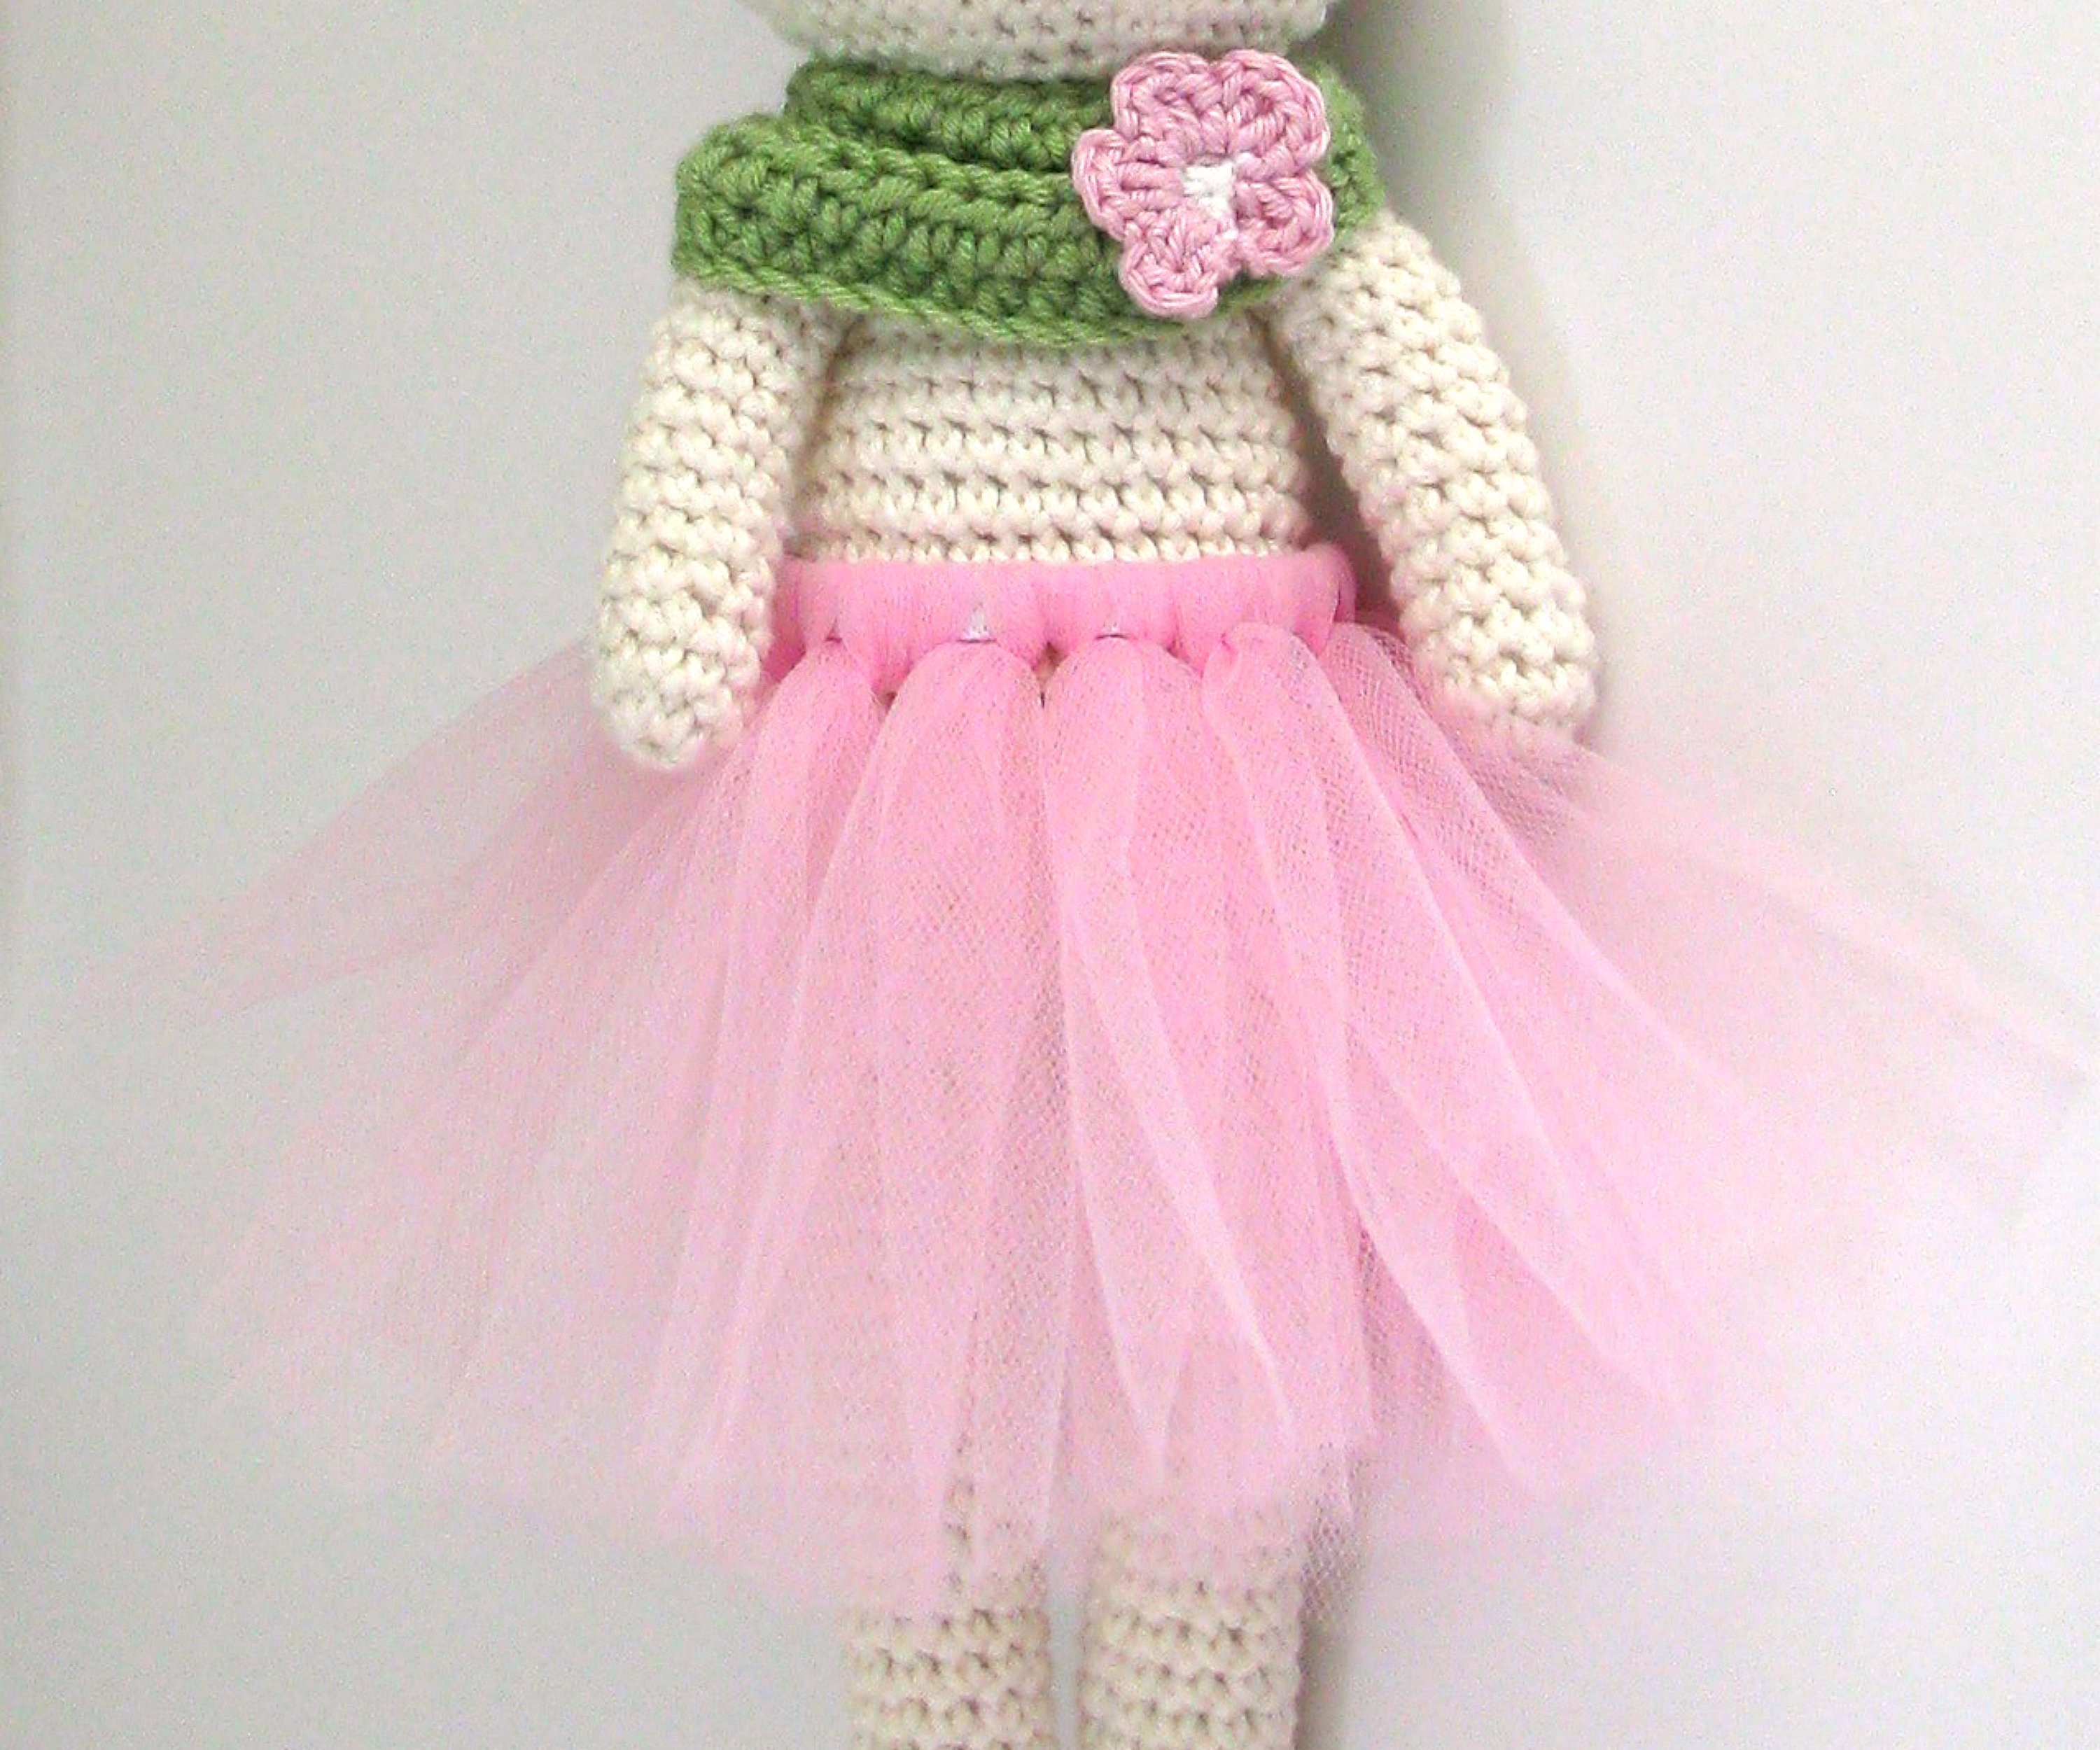 Amy the Amigurumi Doll - A Free Crochet-A-Long - Grace and Yarn | 2500x3000